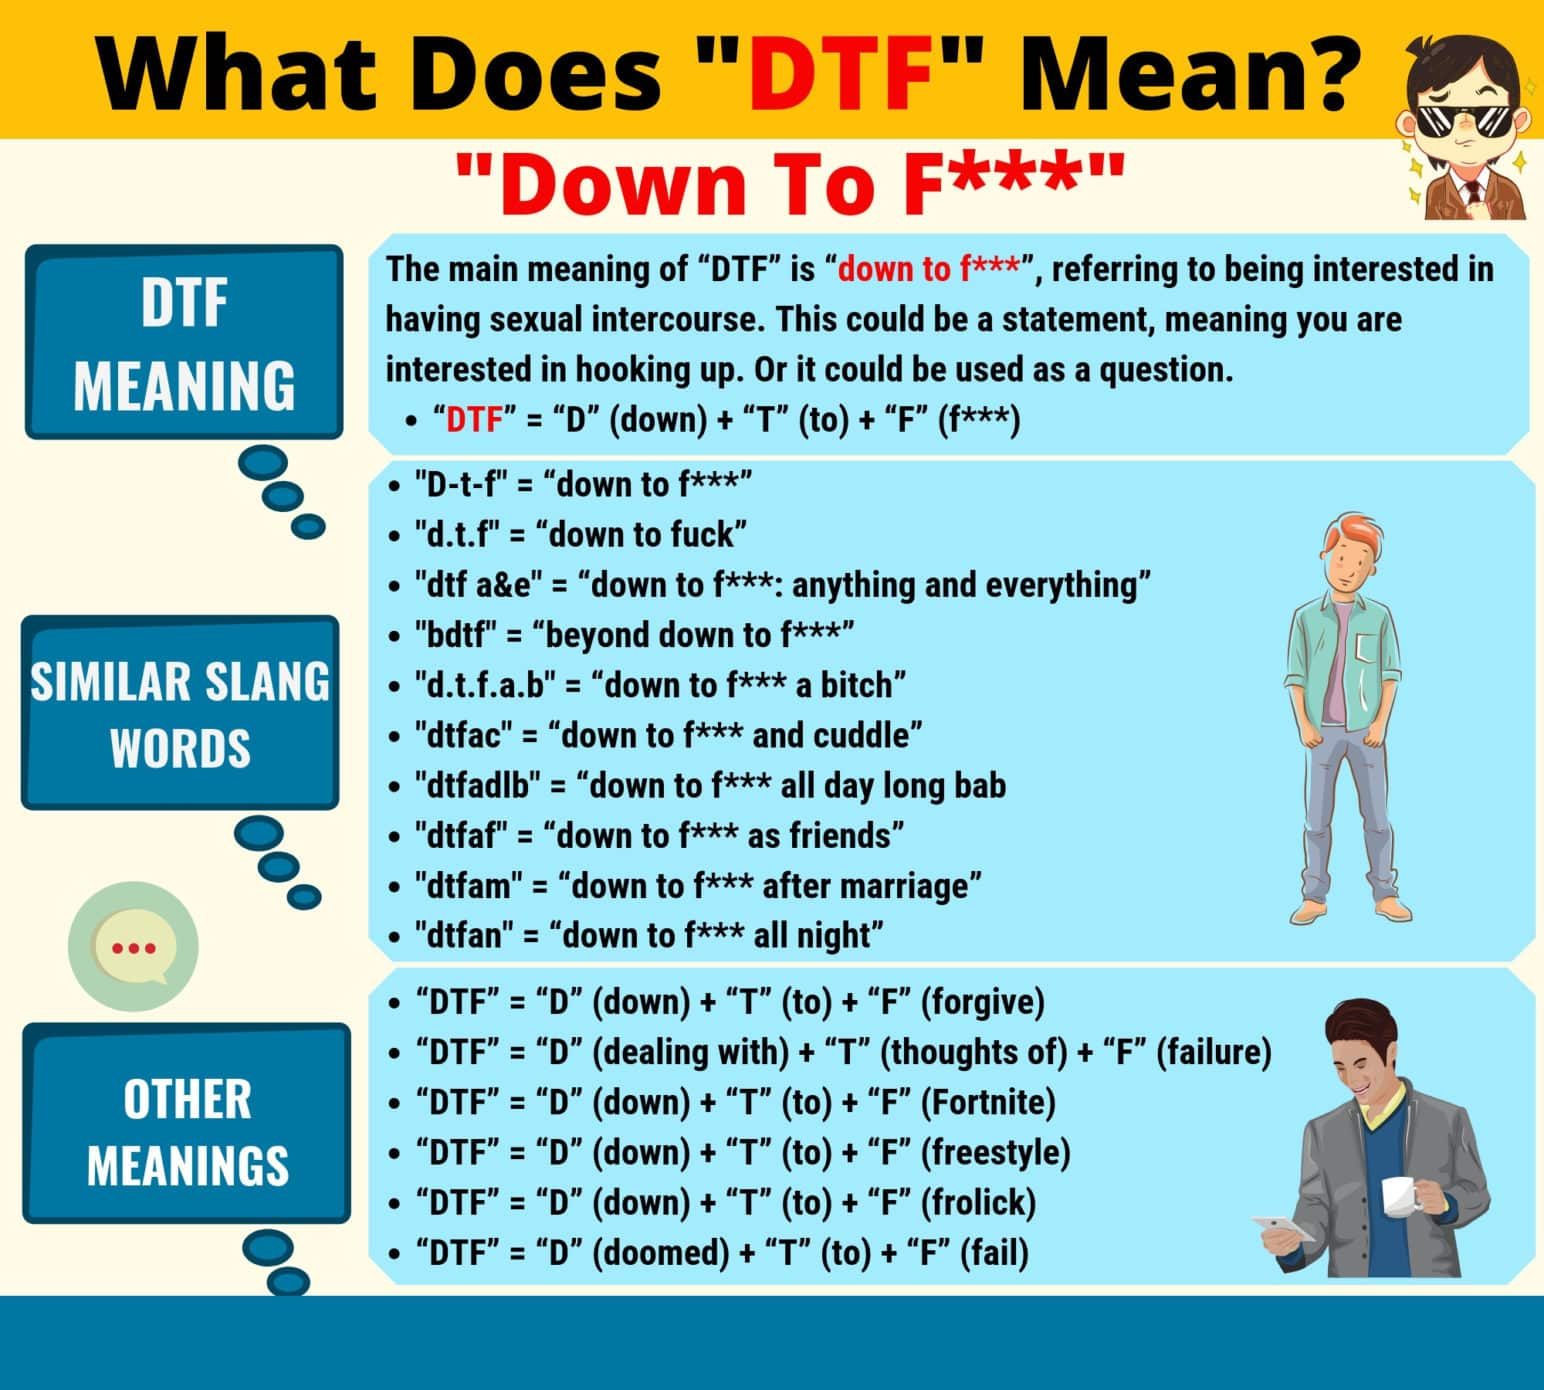 DTF Meaning: What Does DTF Mean and Stand for? 2